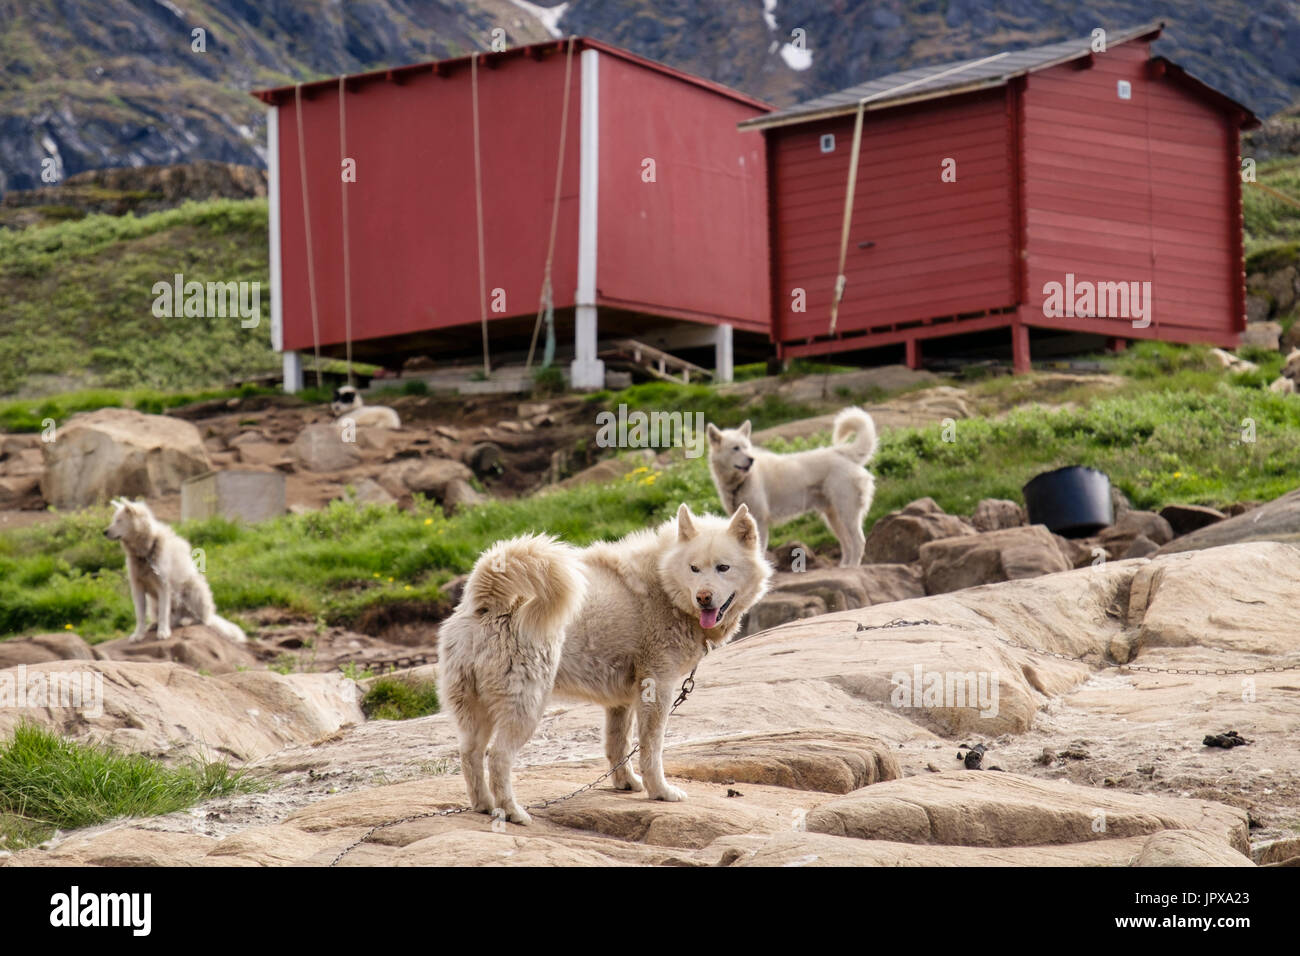 Greenlandic Huskies (Canis lupus familiaris borealis) chained up outside in summer. Sisimiut (Holsteinsborg), Qeqqata, Greenland. - Stock Image